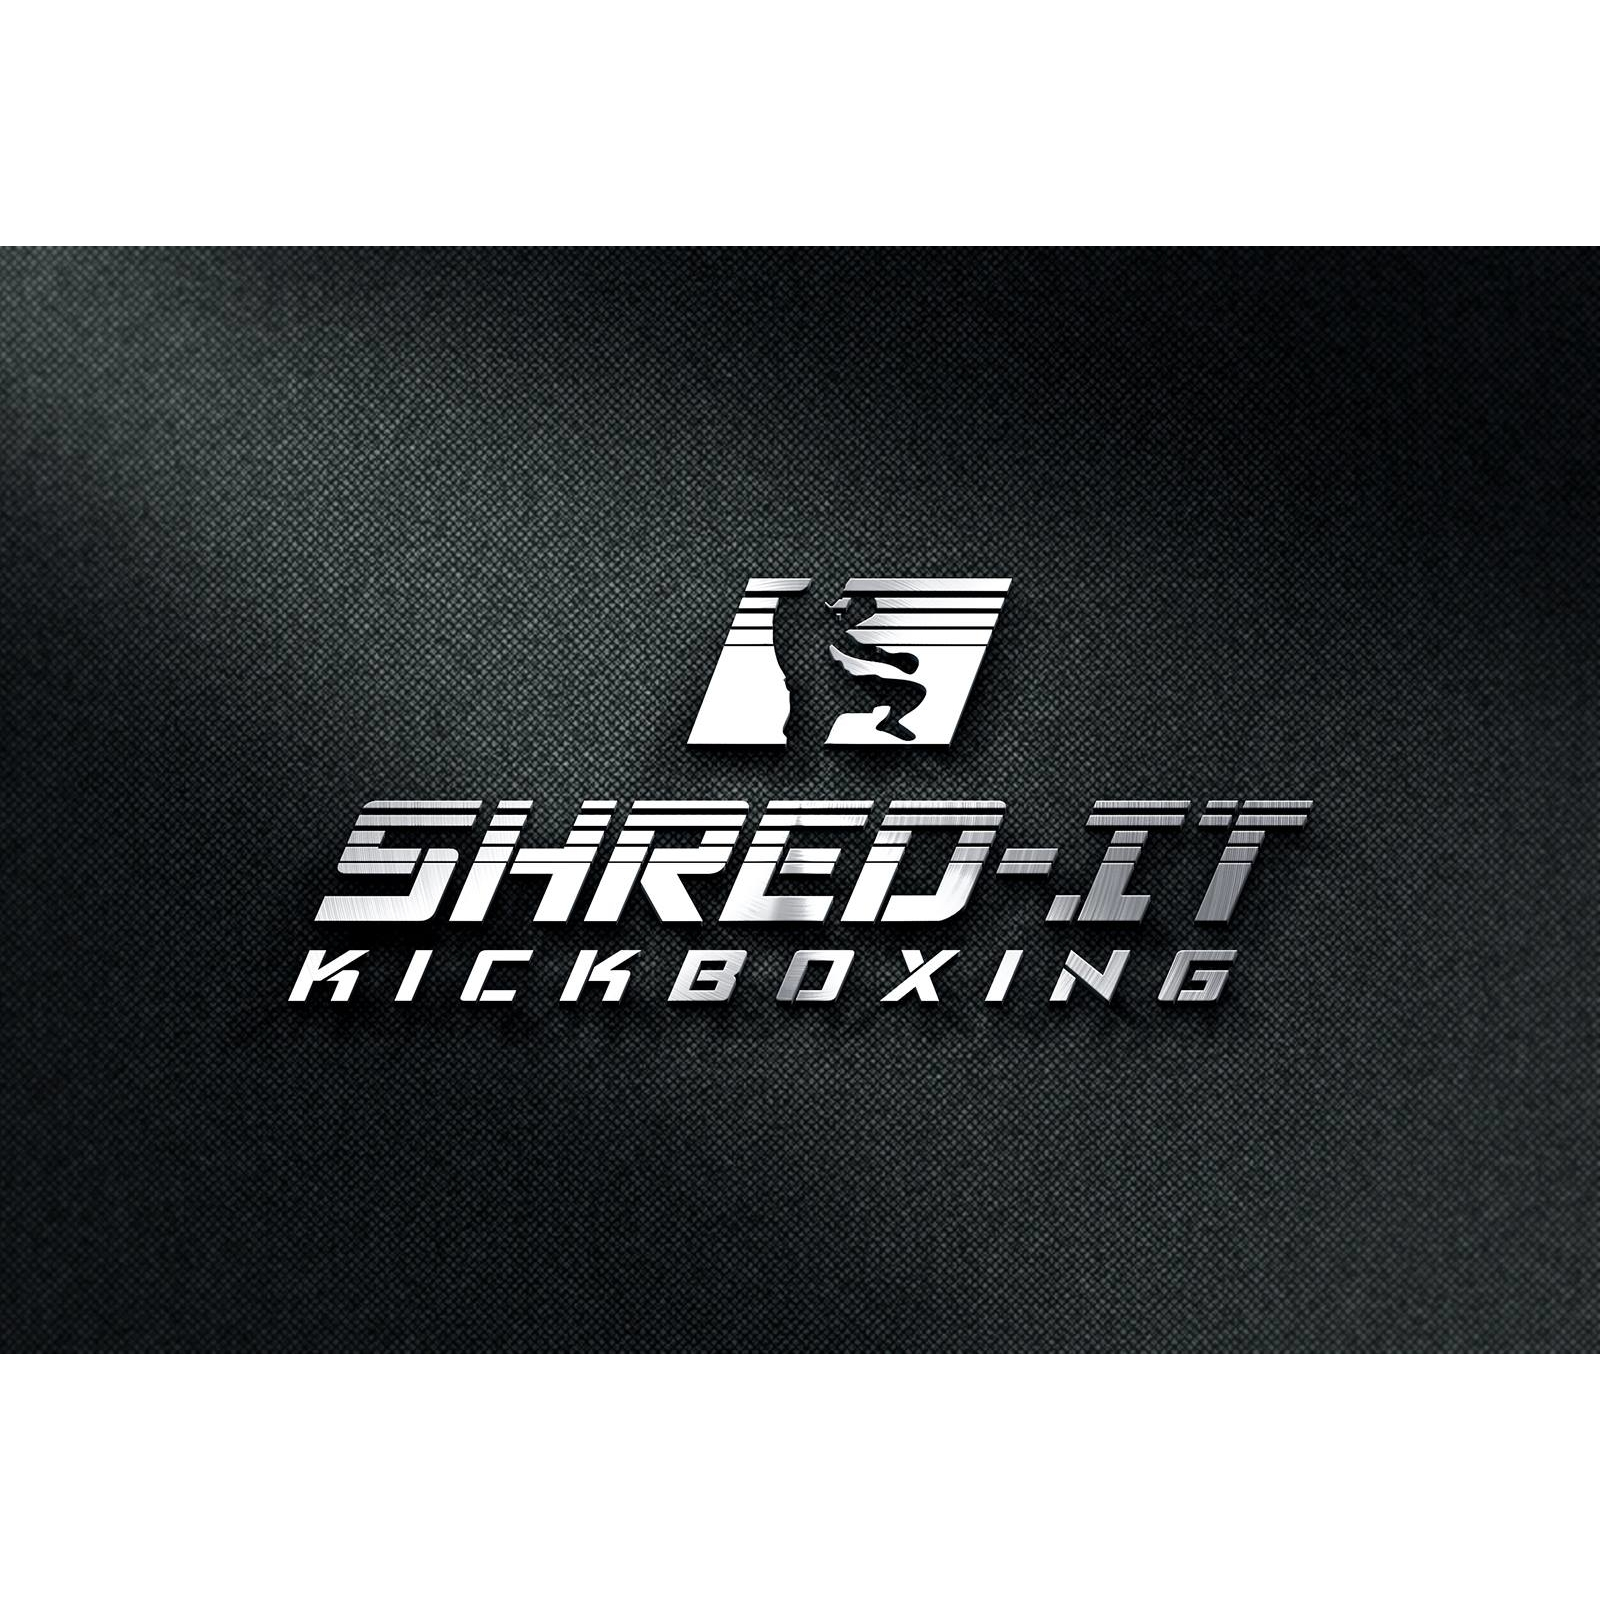 Shred-It Kickboxing